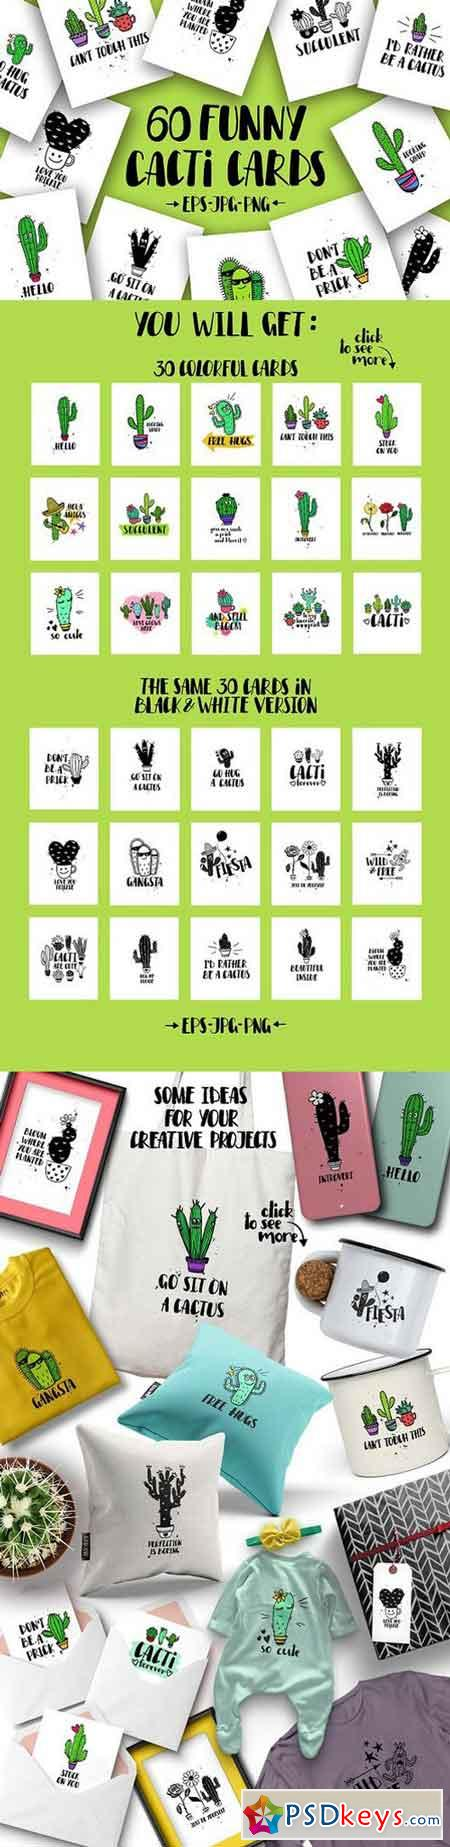 Cacti Cards 1519219